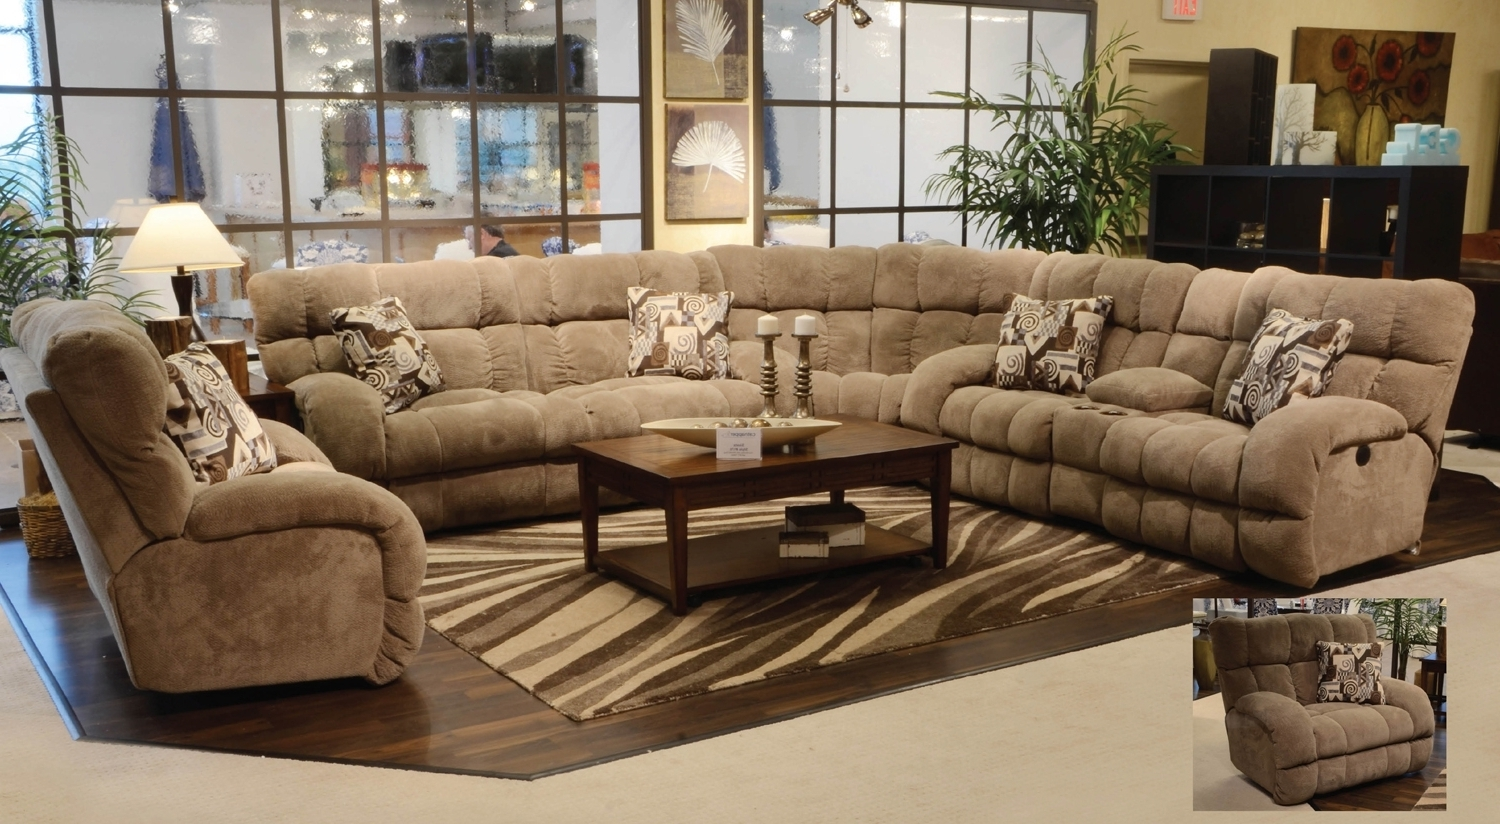 Huge Sofas For Favorite Sofa : Fascinating Large Sectional Sofa Modern Sofas Large (View 7 of 20)